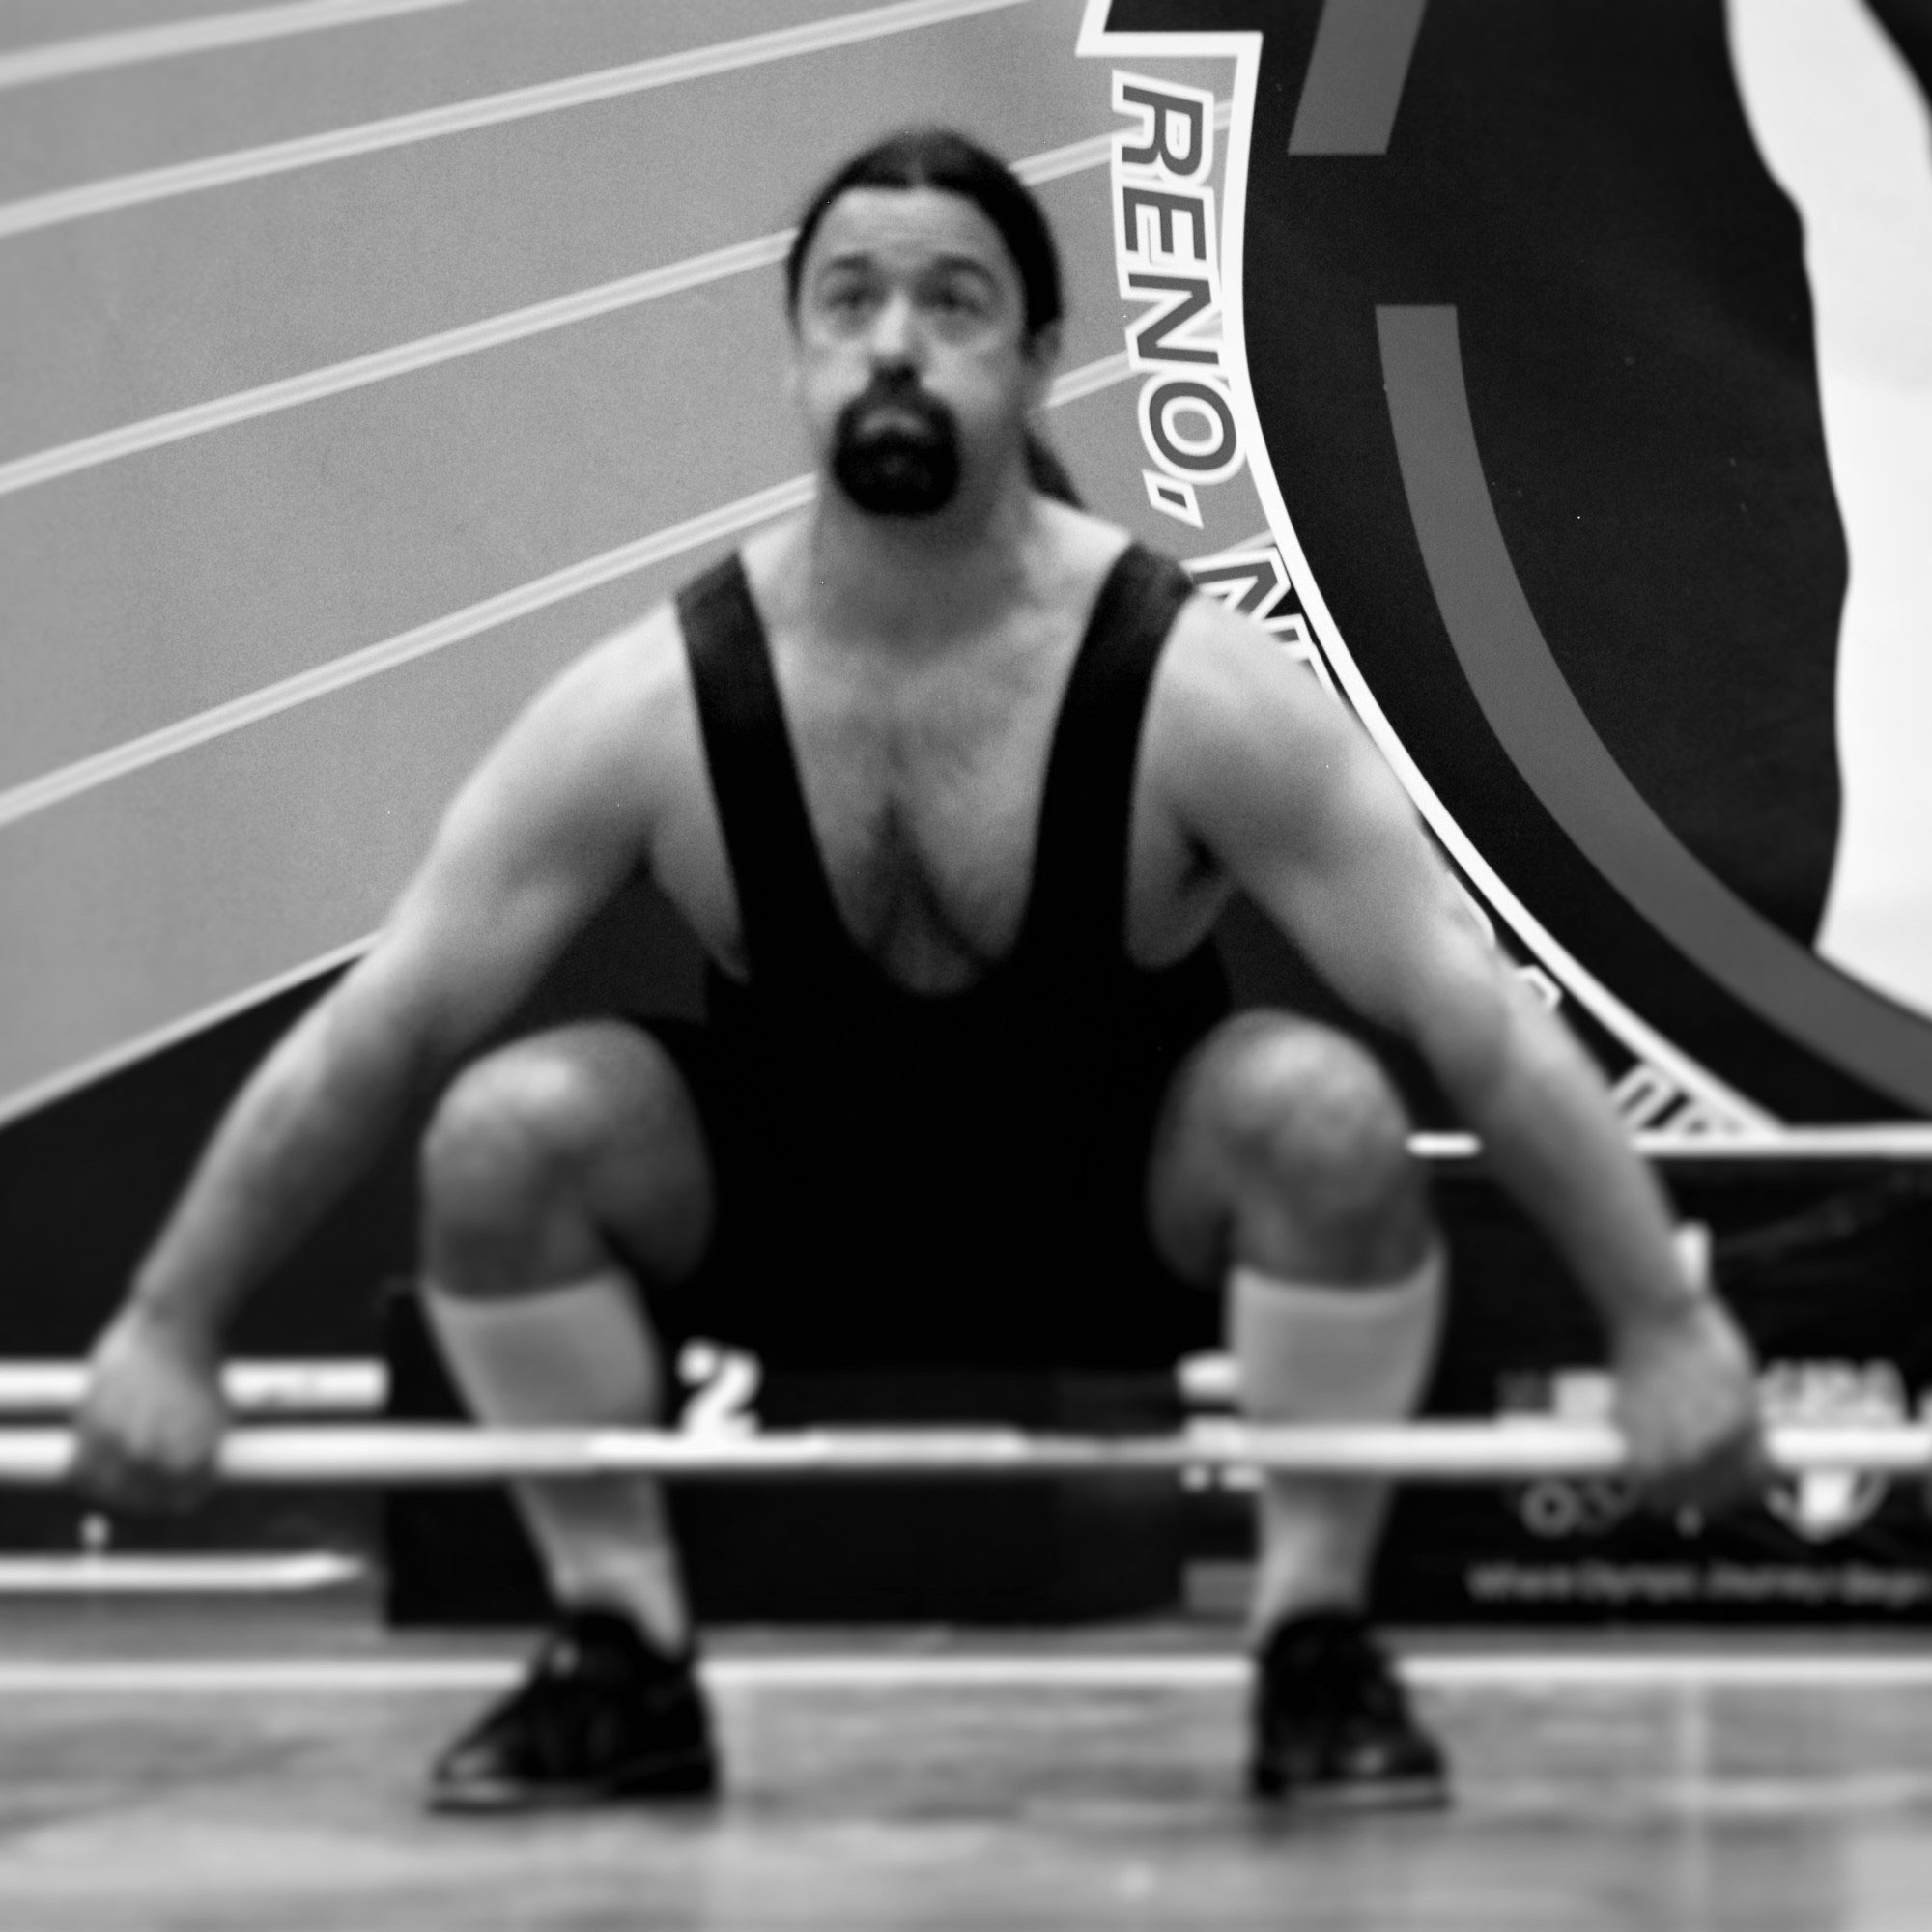 weightlifting_copy